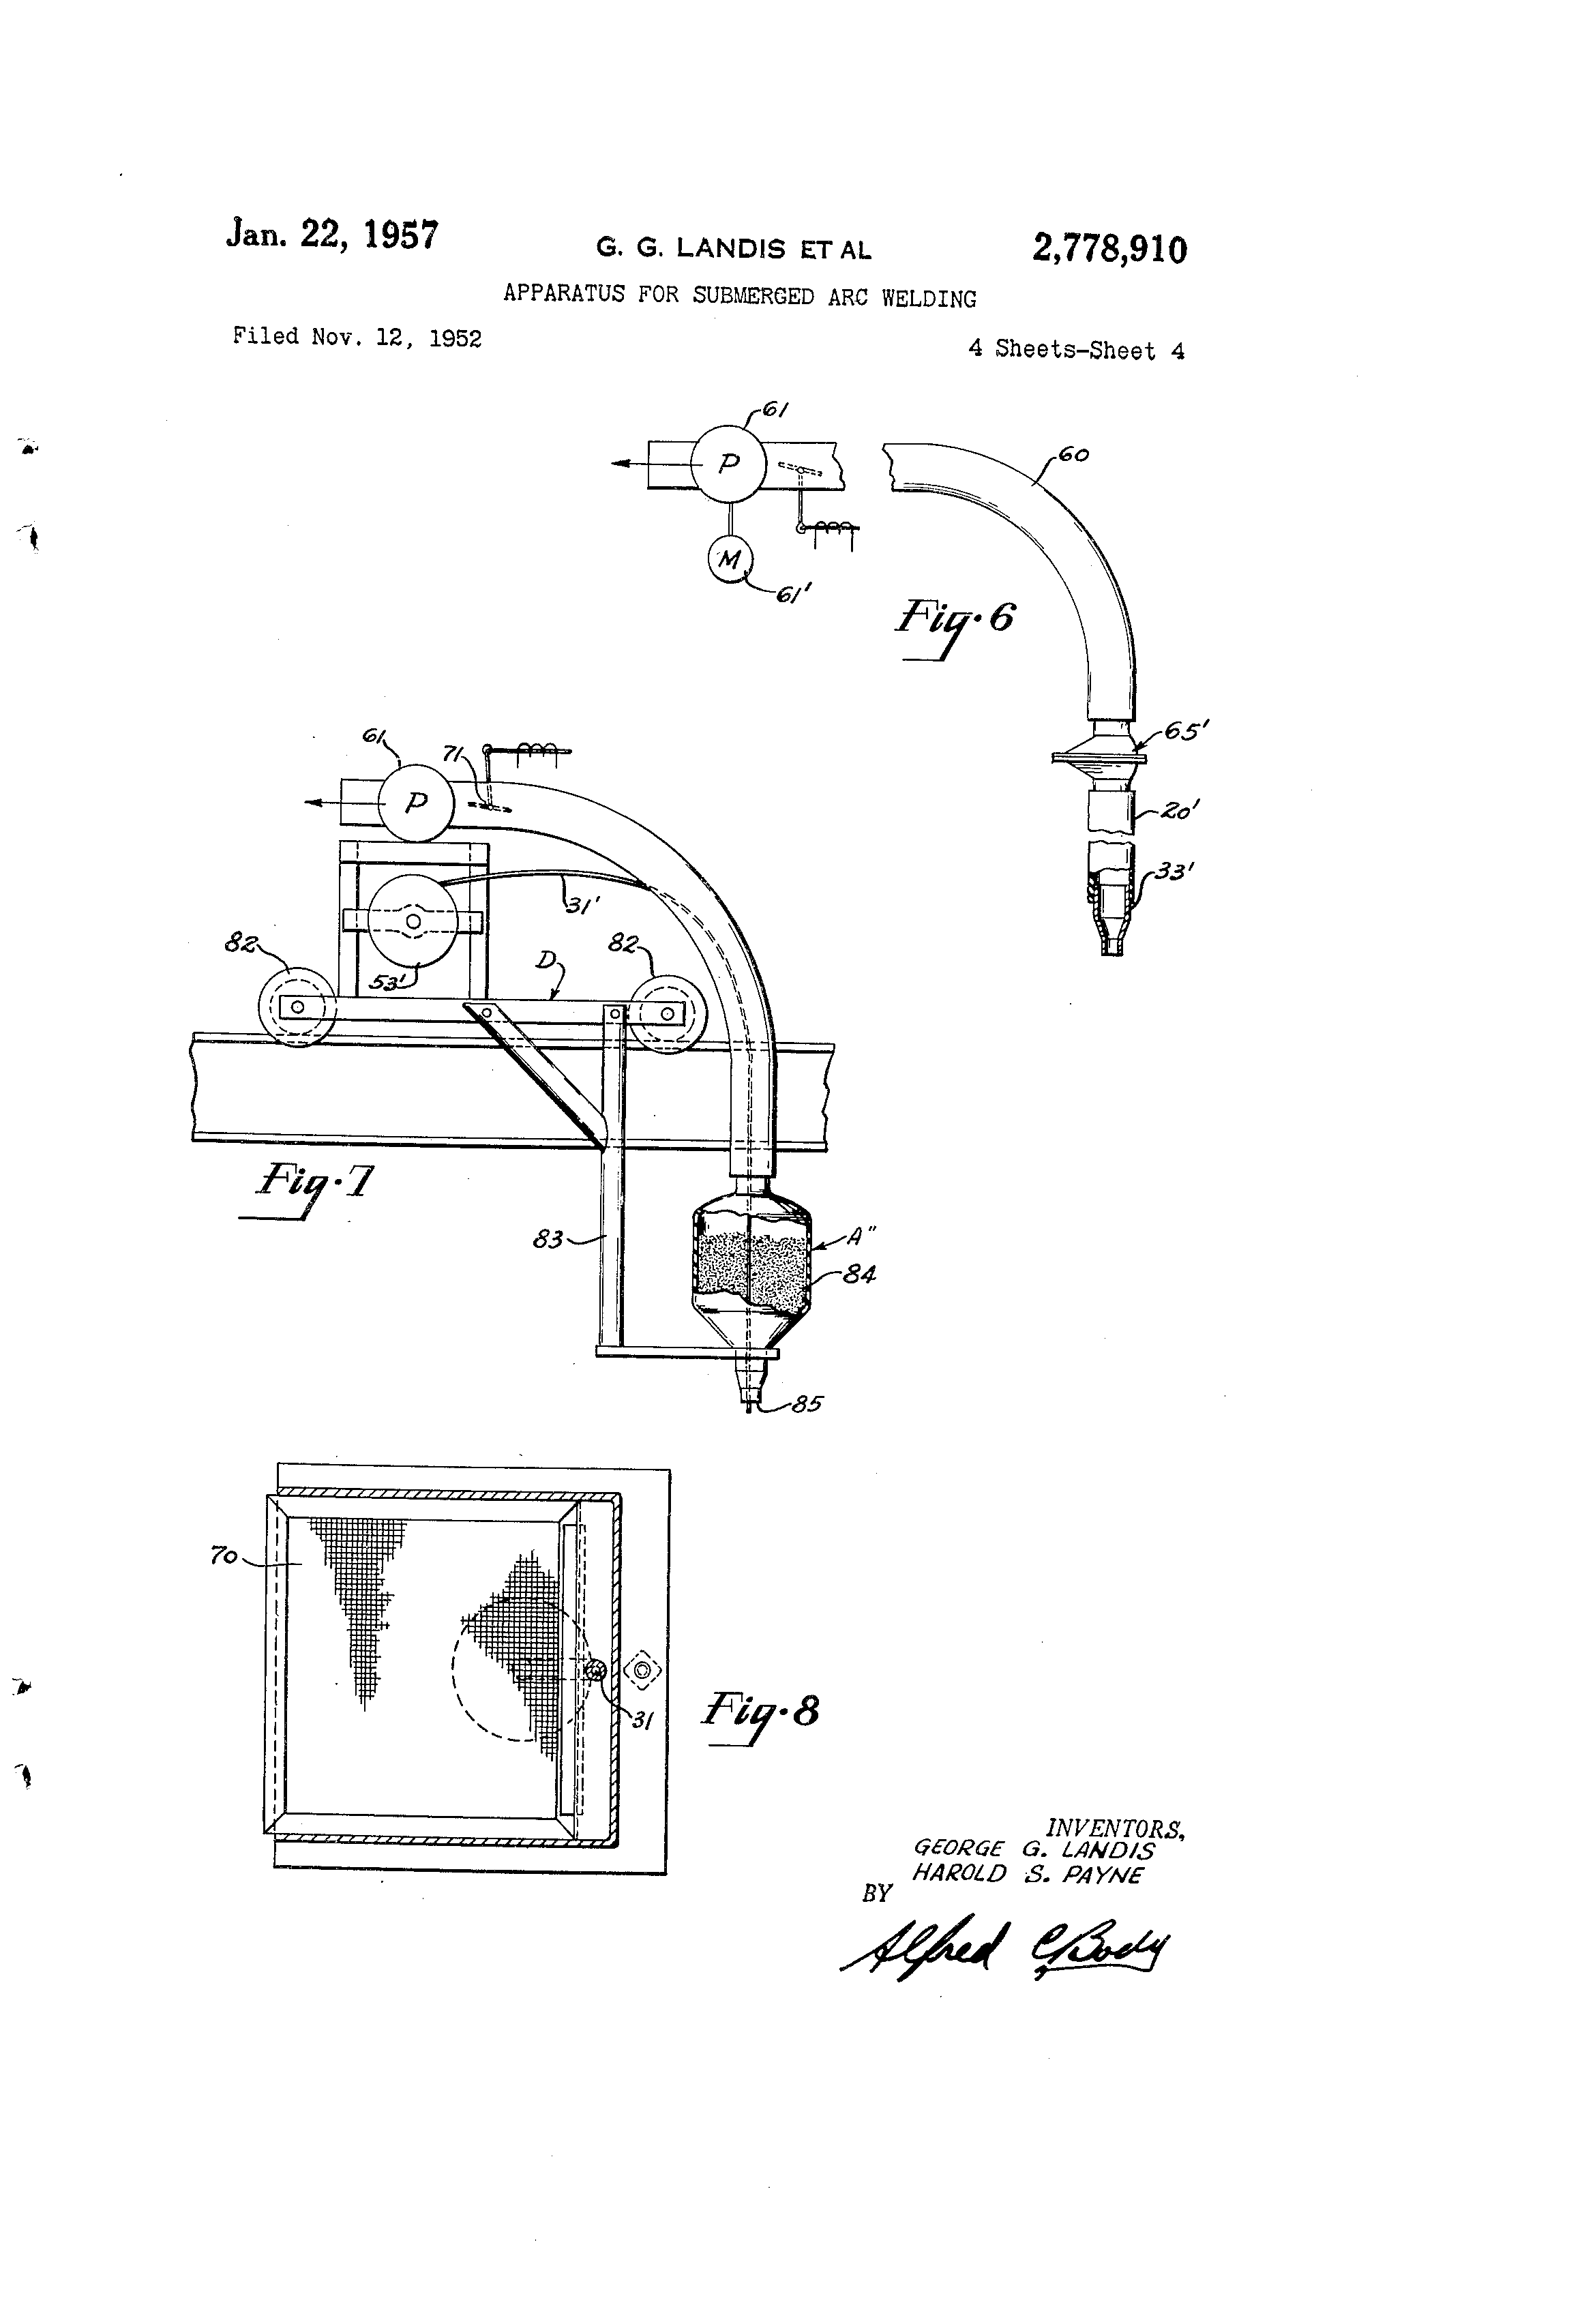 Fabulous Us2778910A Apparatus For Submerged Arc Welding Google Patents Ranpur Mohammedshrine Wiring Digital Resources Ranpurmohammedshrineorg